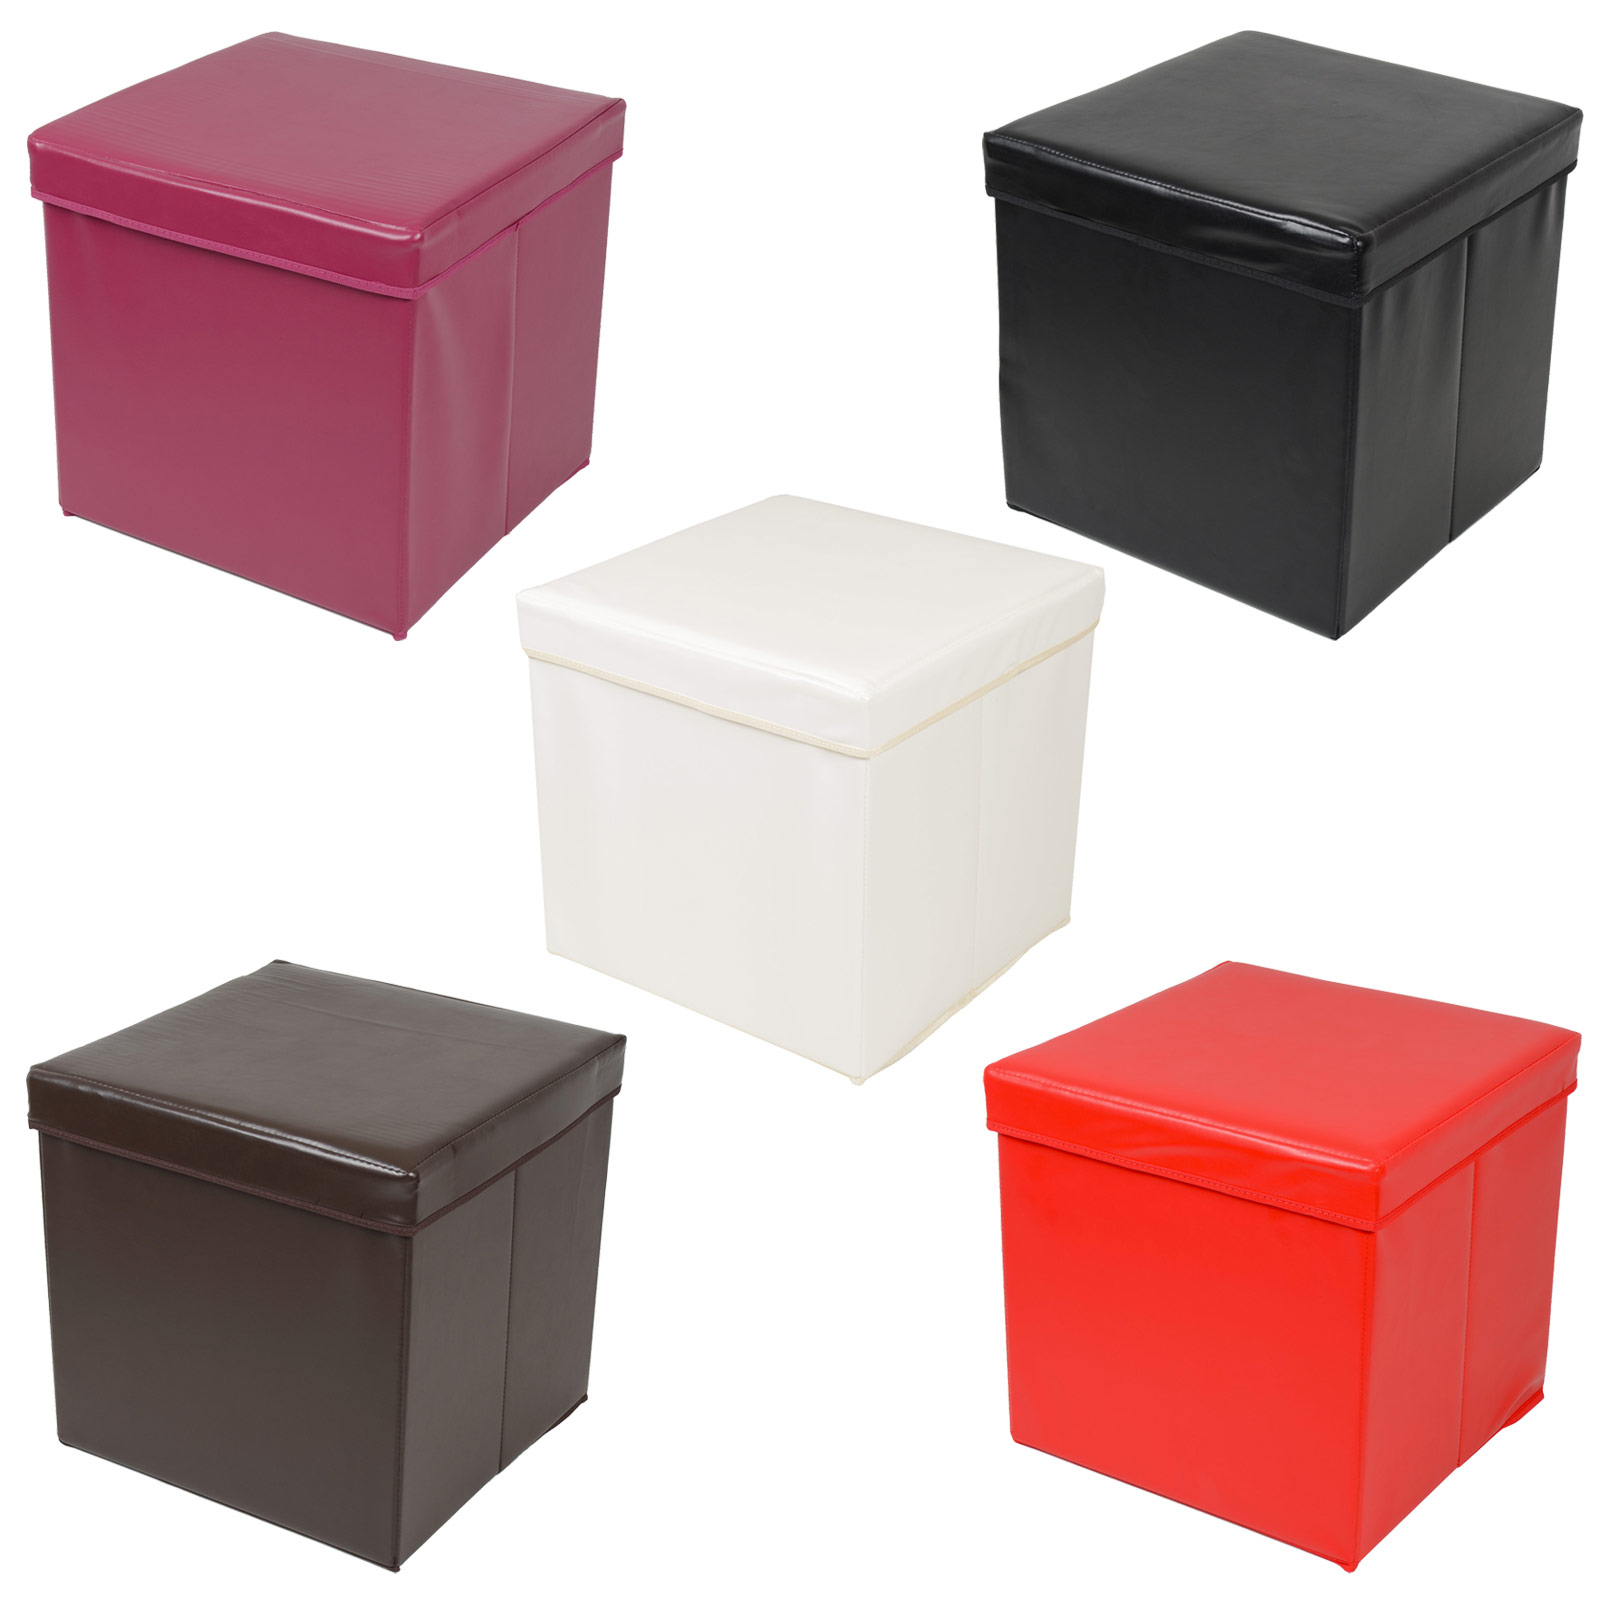 Ottoman Large Faux Leather Folding Storage Pouffe Toy Box Foot Stool Seat SALE  sc 1 st  eBay & Ottoman Large Faux Leather Folding Storage Pouffe Toy Box Foot ... Aboutintivar.Com